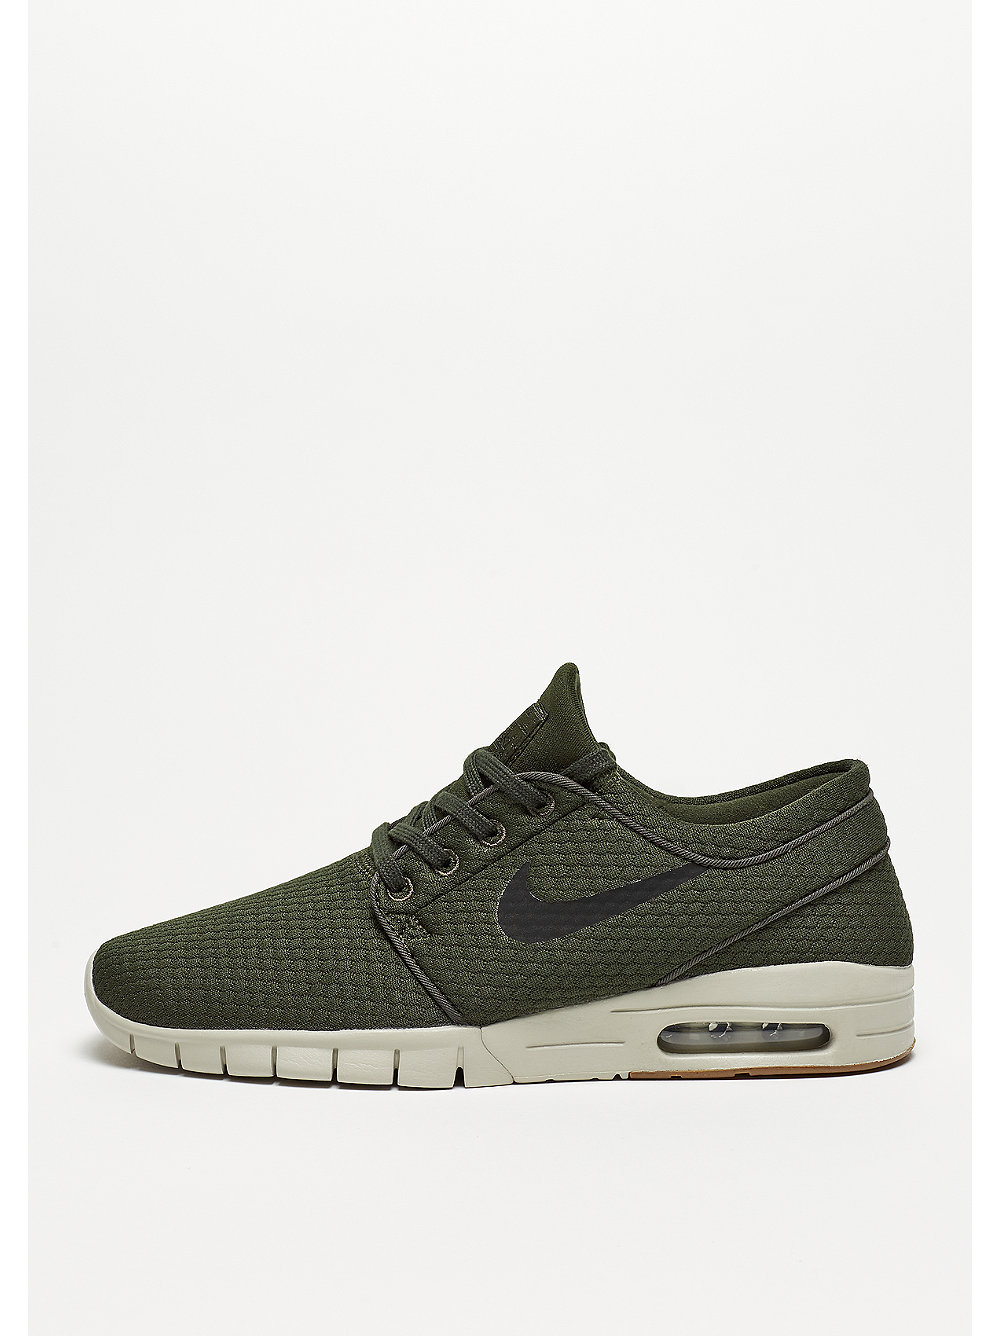 STEFAN JANOSKI MAX - Sneaker low - sequoia/black/medium brown/light bone 2ShXsExhO5